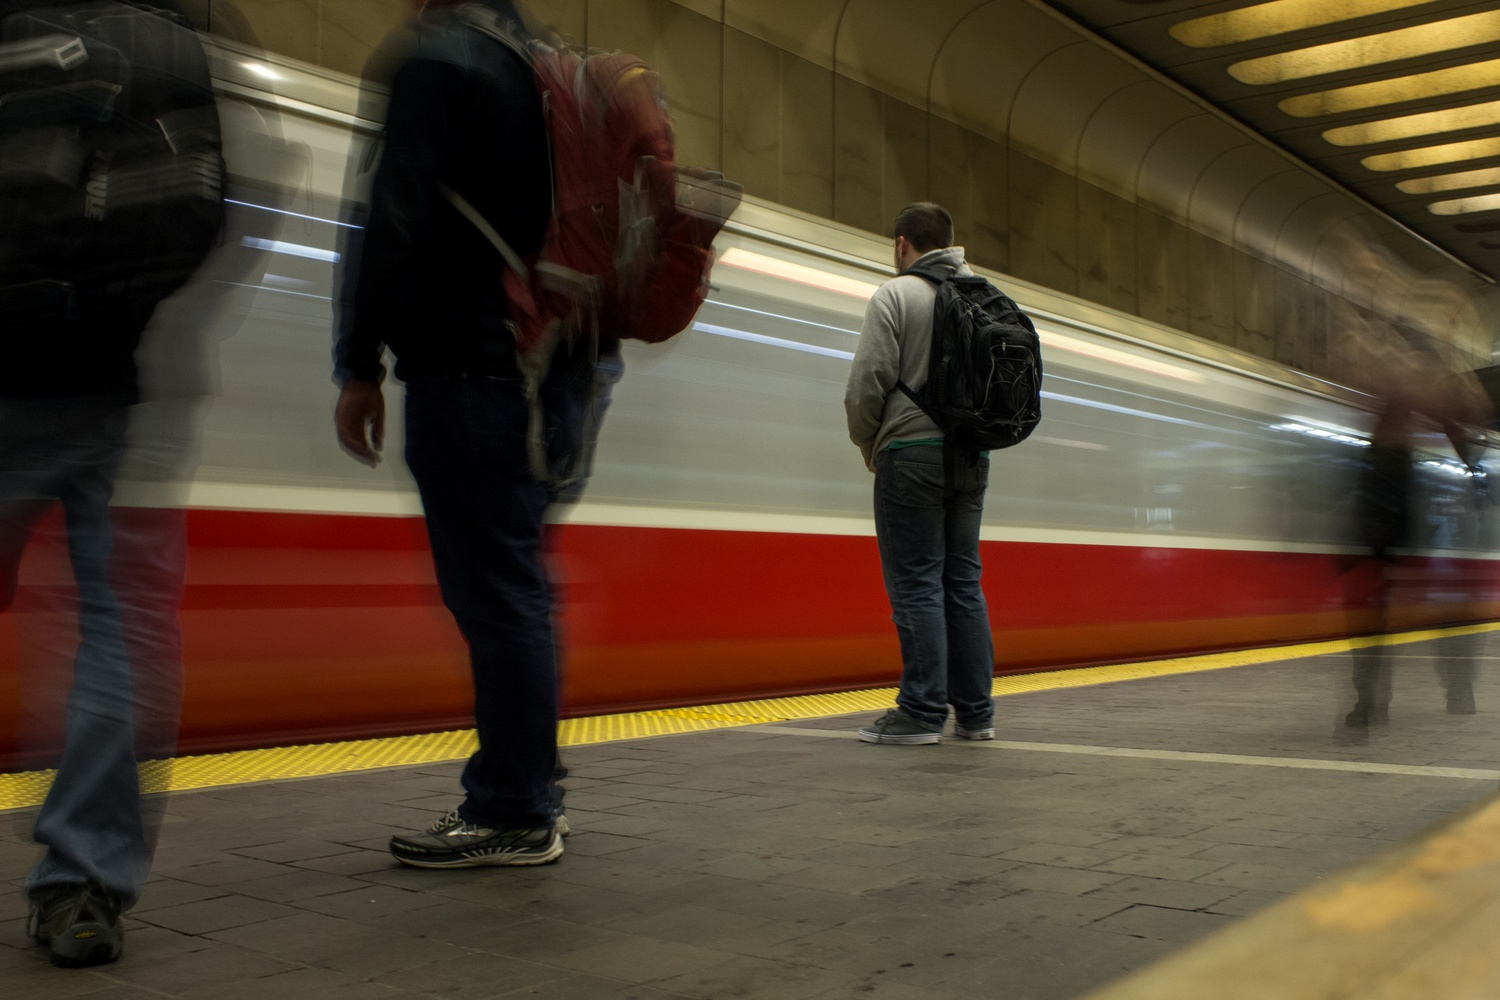 Passengers line up outside an arriving MBTA subway car, preparing to board during rush hour traffic on a Thursday evening.  From next year, undergraduate HUIDs for new students will add MBTA CharlieCard functionality.